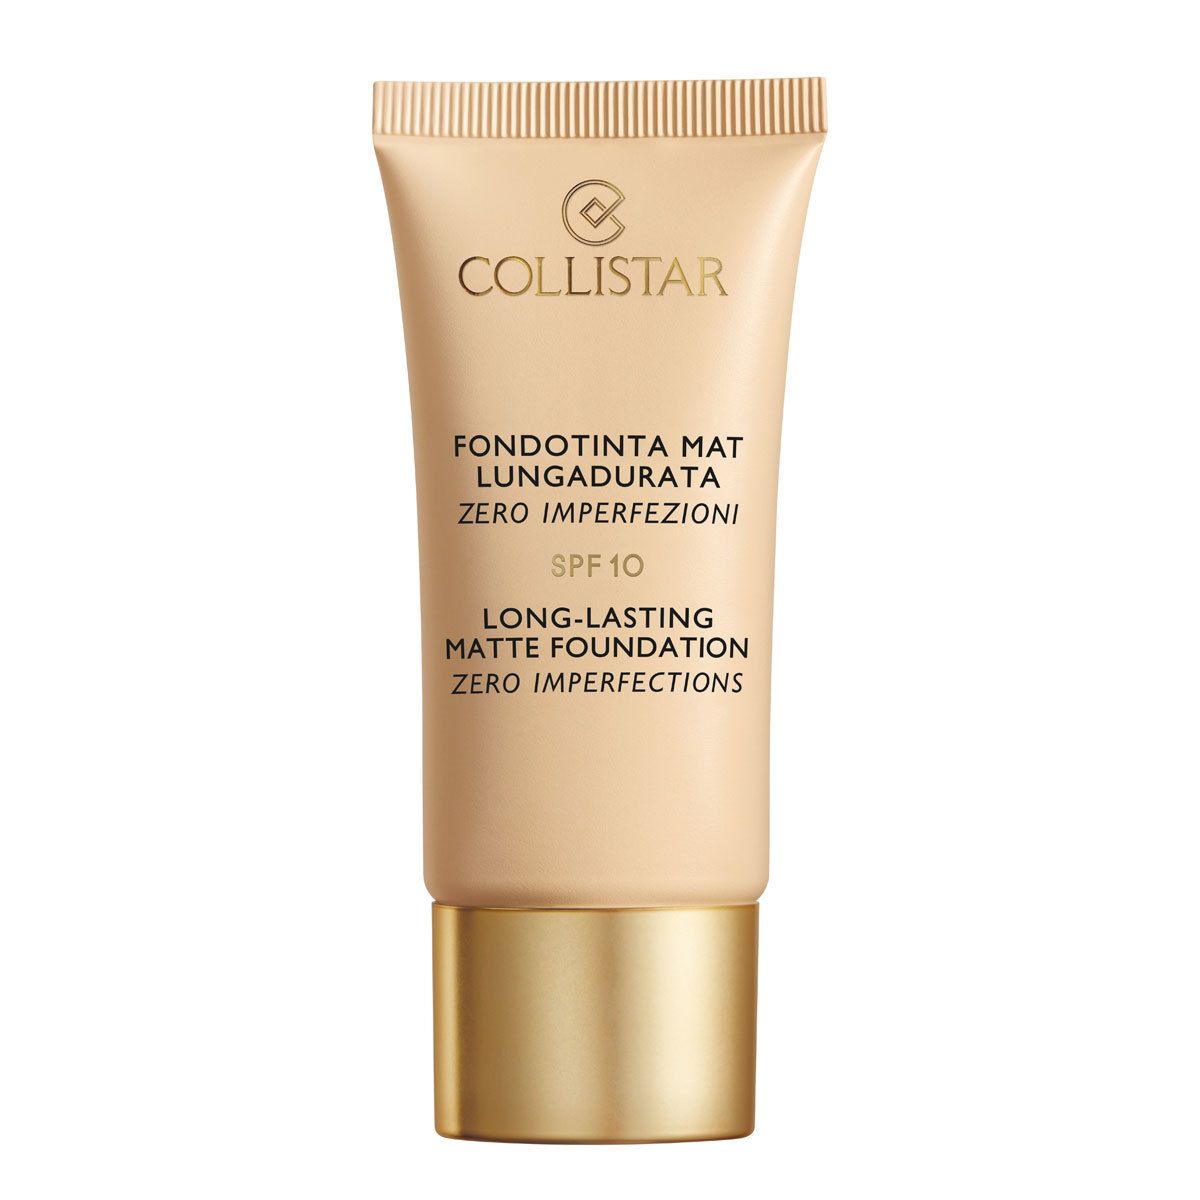 Base de maquillaje Cero Imperfecciones de Collistar.